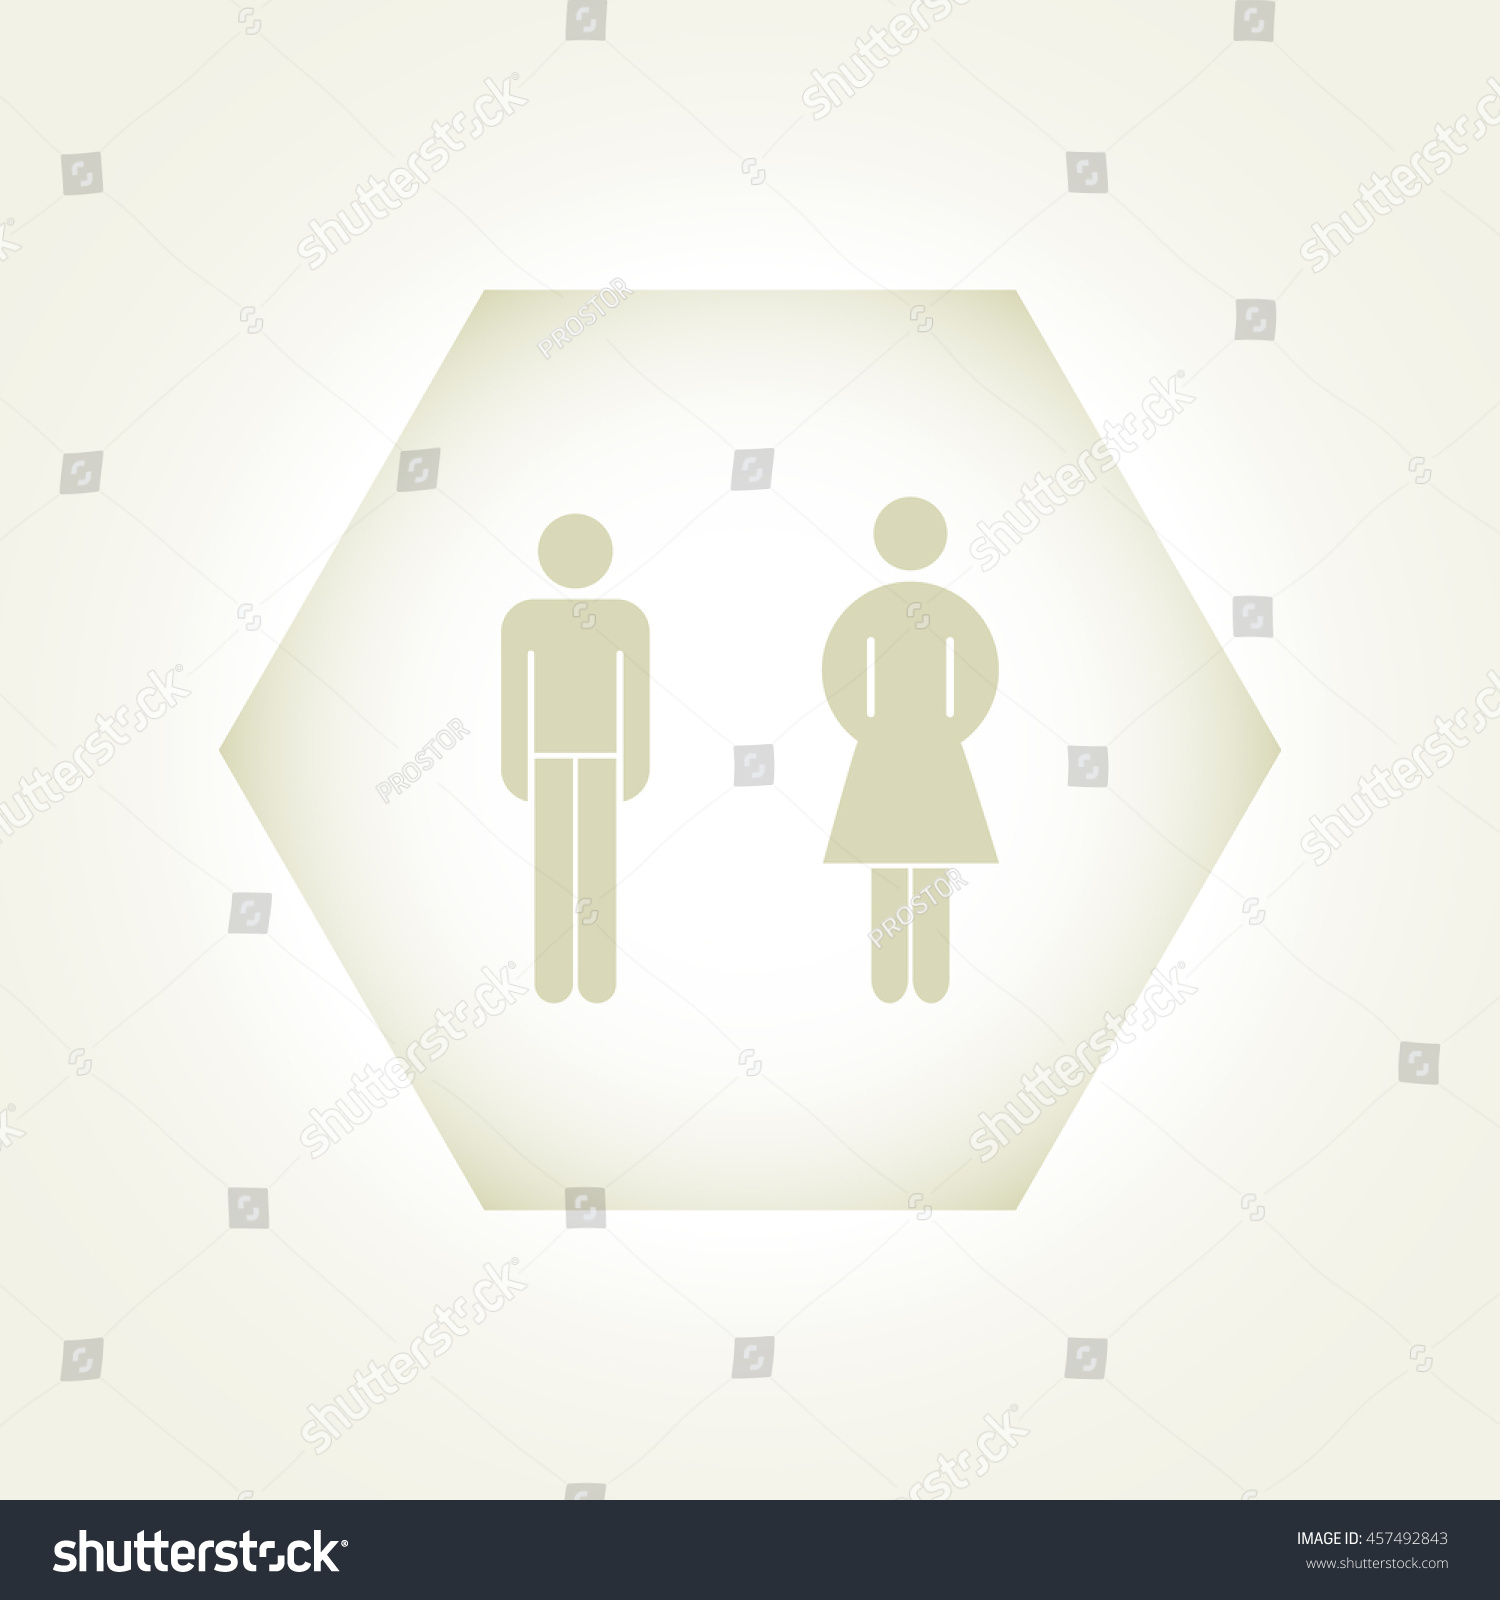 Vector man and woman icons, toilet sign, restroom icon, minimal  #457492843